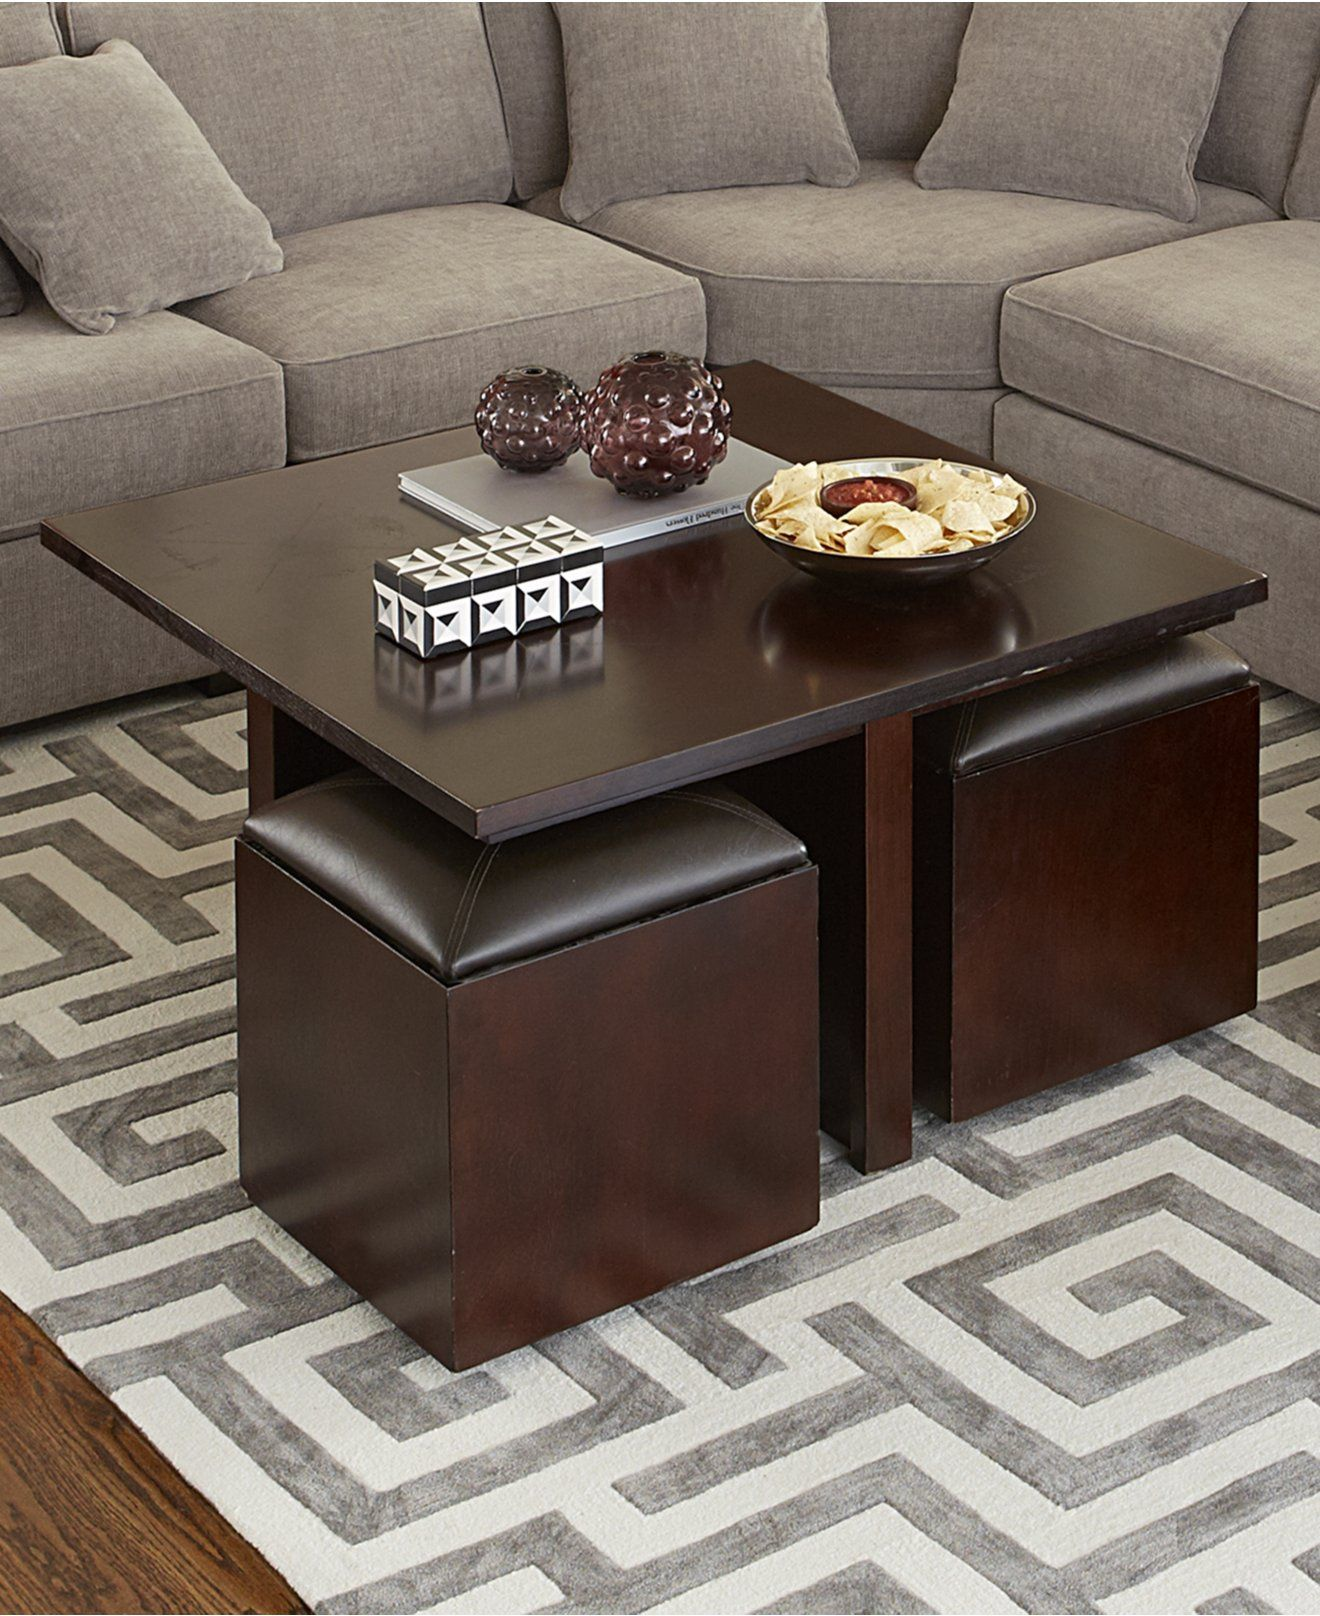 Belford Cocktail Table Square Furniture Macy S Coffee Table With Seating Coffee Table Living Room Modern Coffee Table [ 1616 x 1320 Pixel ]